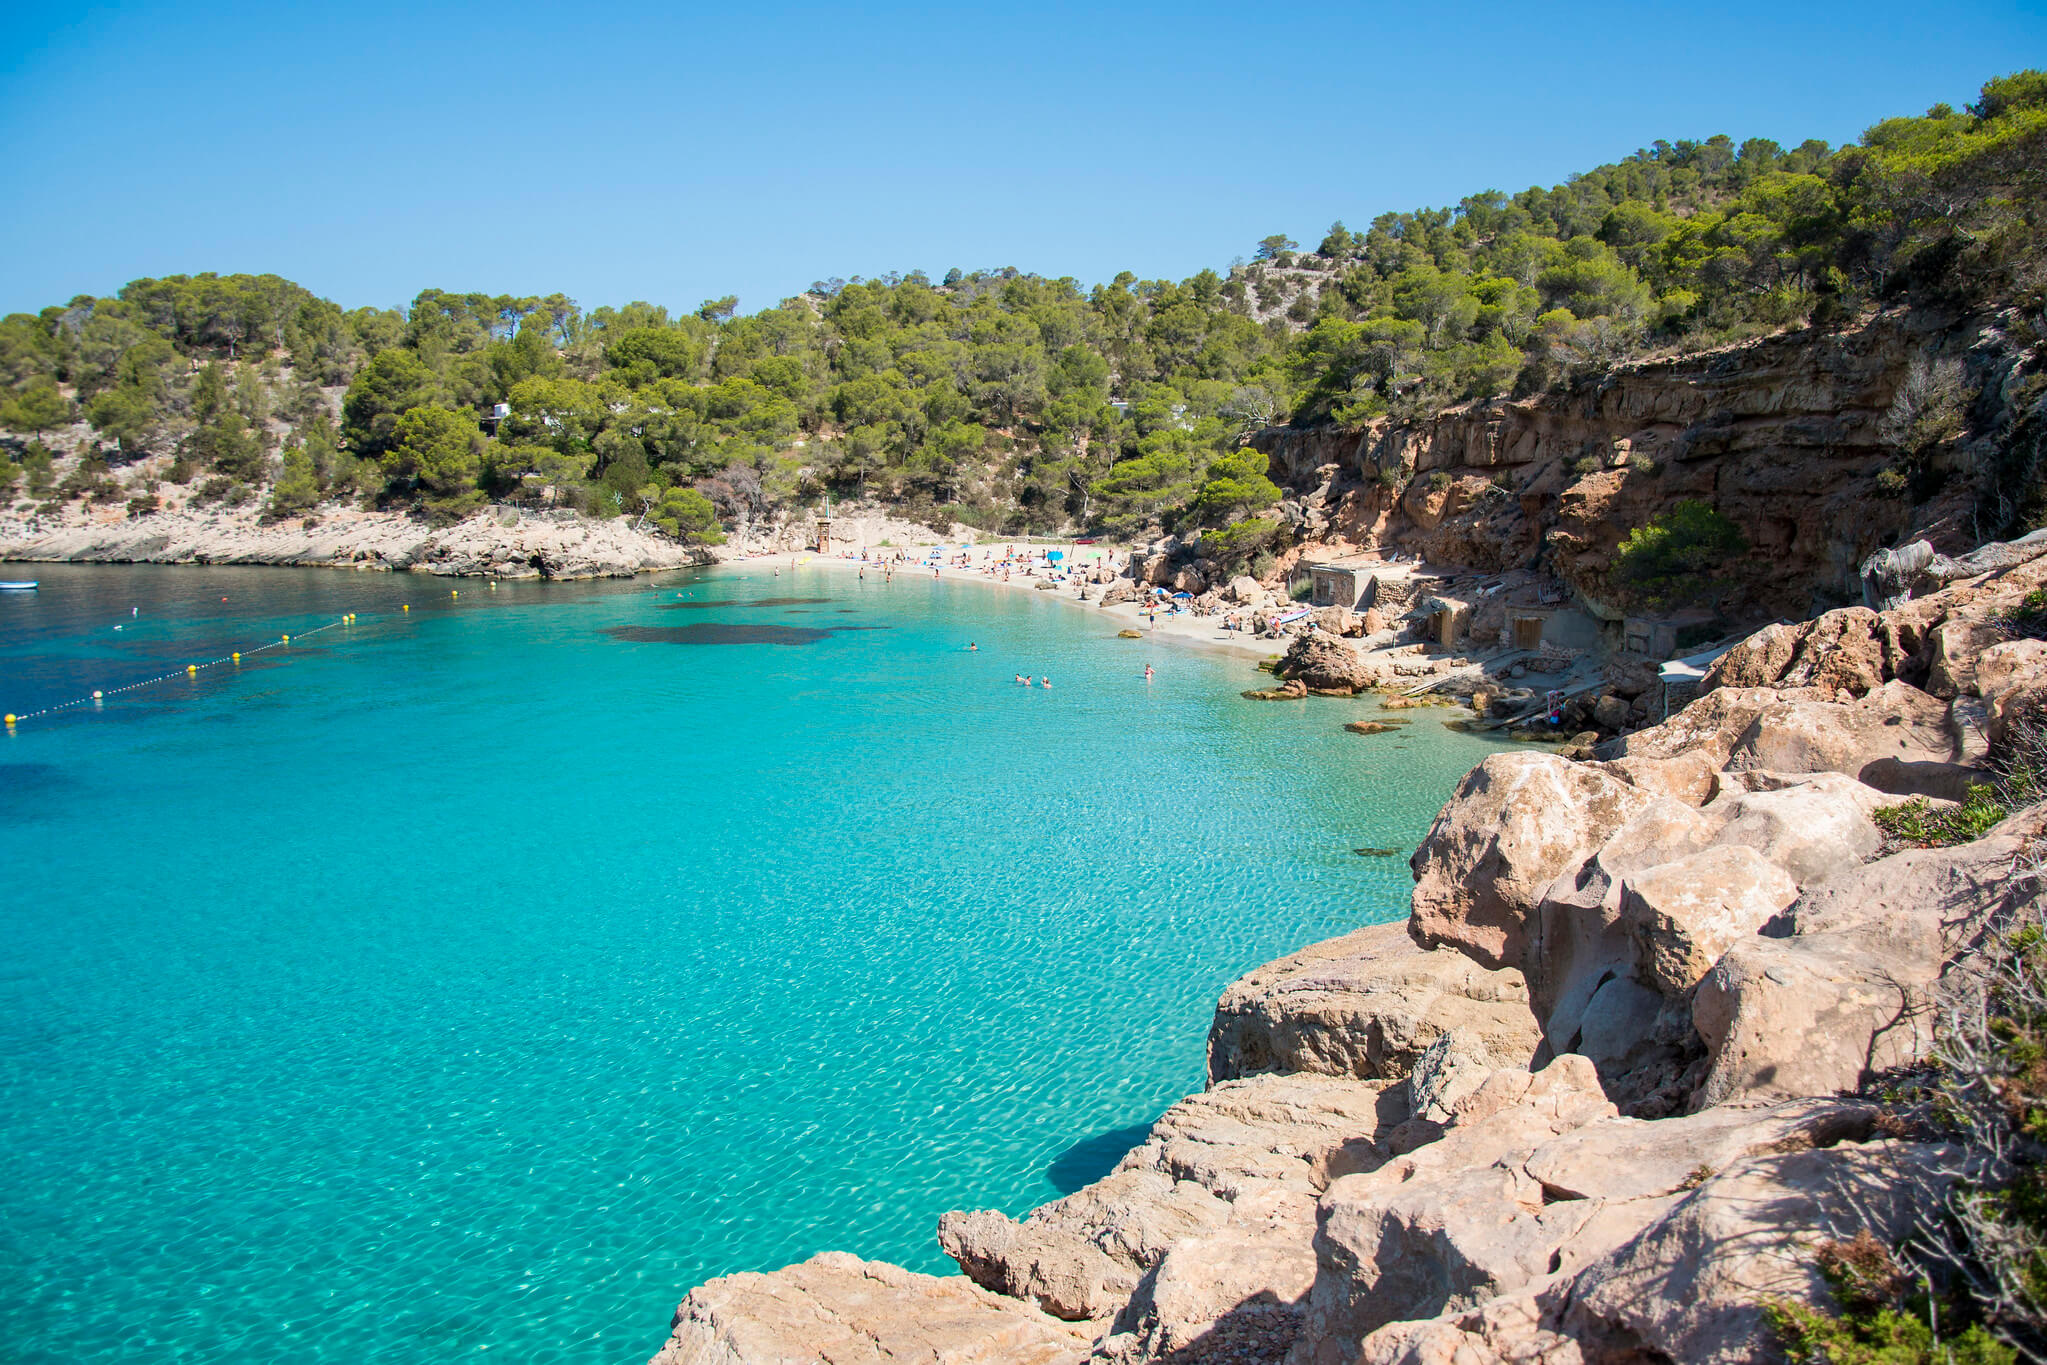 https://www.white-ibiza.com/wp-content/uploads/2020/03/ibiza-beaches-cala-saladeta-02.jpg